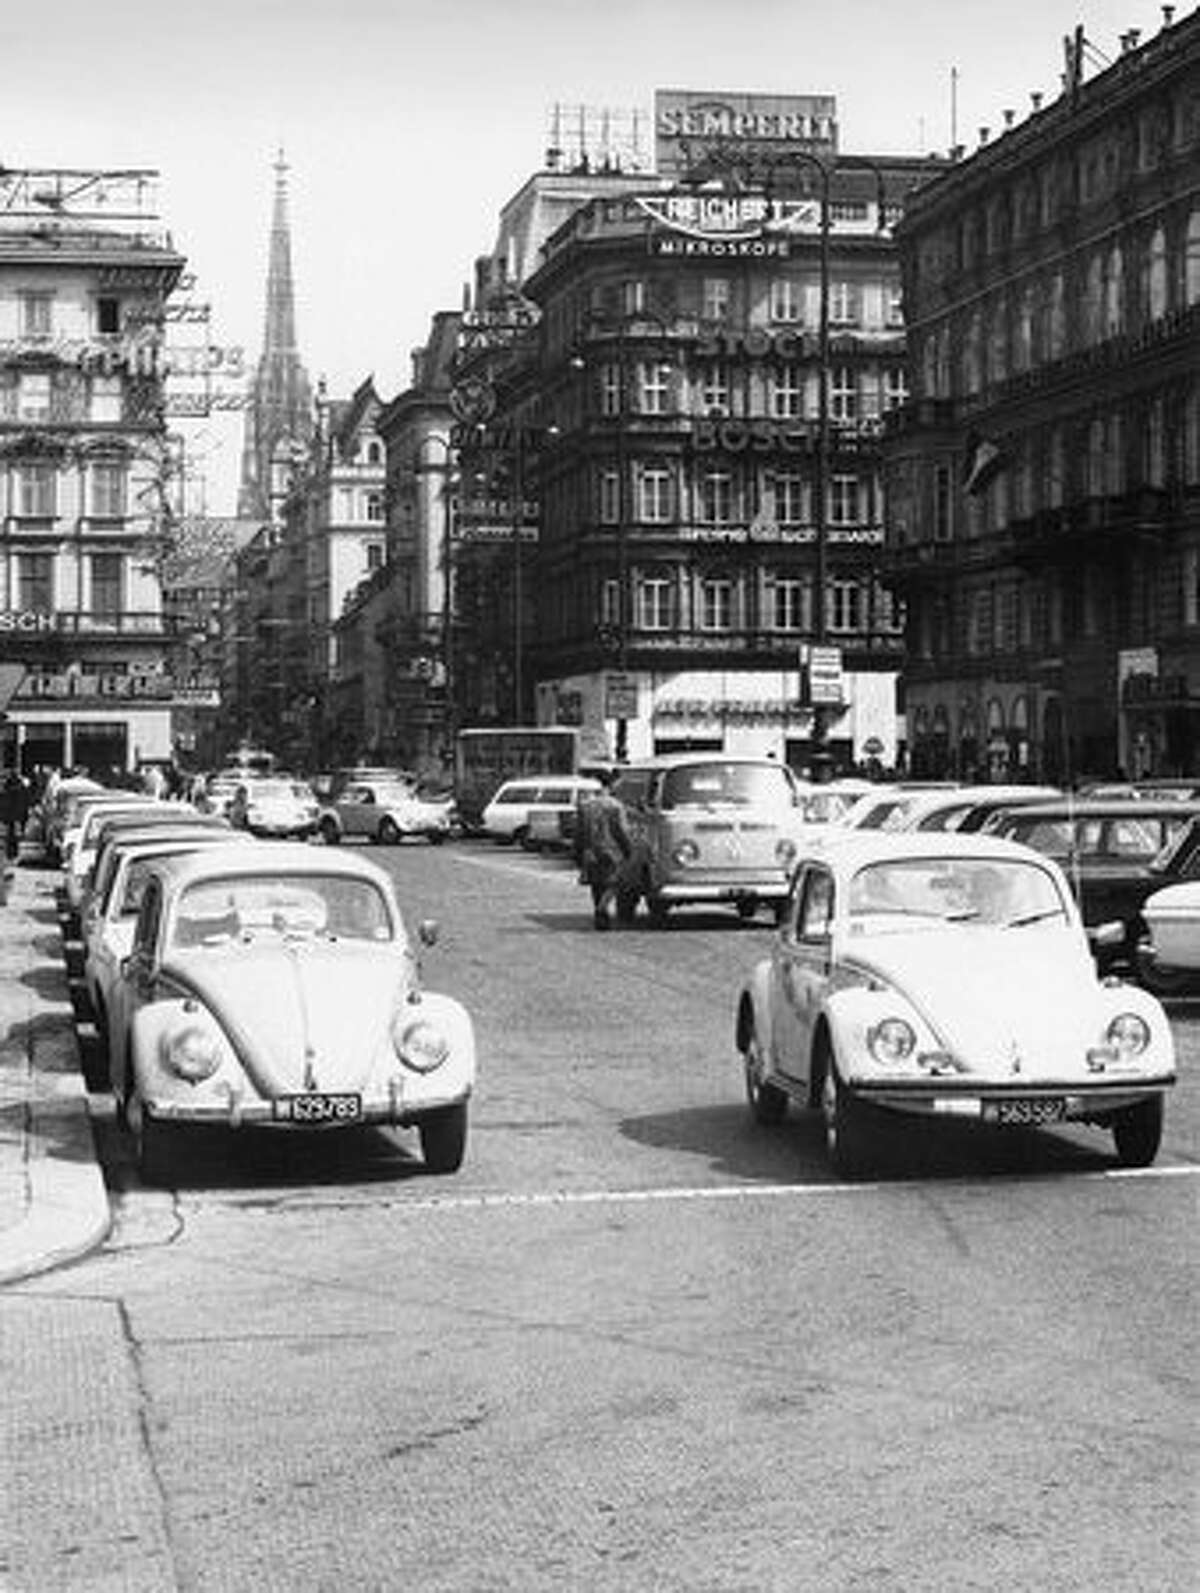 Volkswagen Type 1 cars (aka Beetles) are shown in the foreground with a Type 2 in the background this photo taken circa 1965 in Vienna, Austria. (Wikimedia Commons photo)